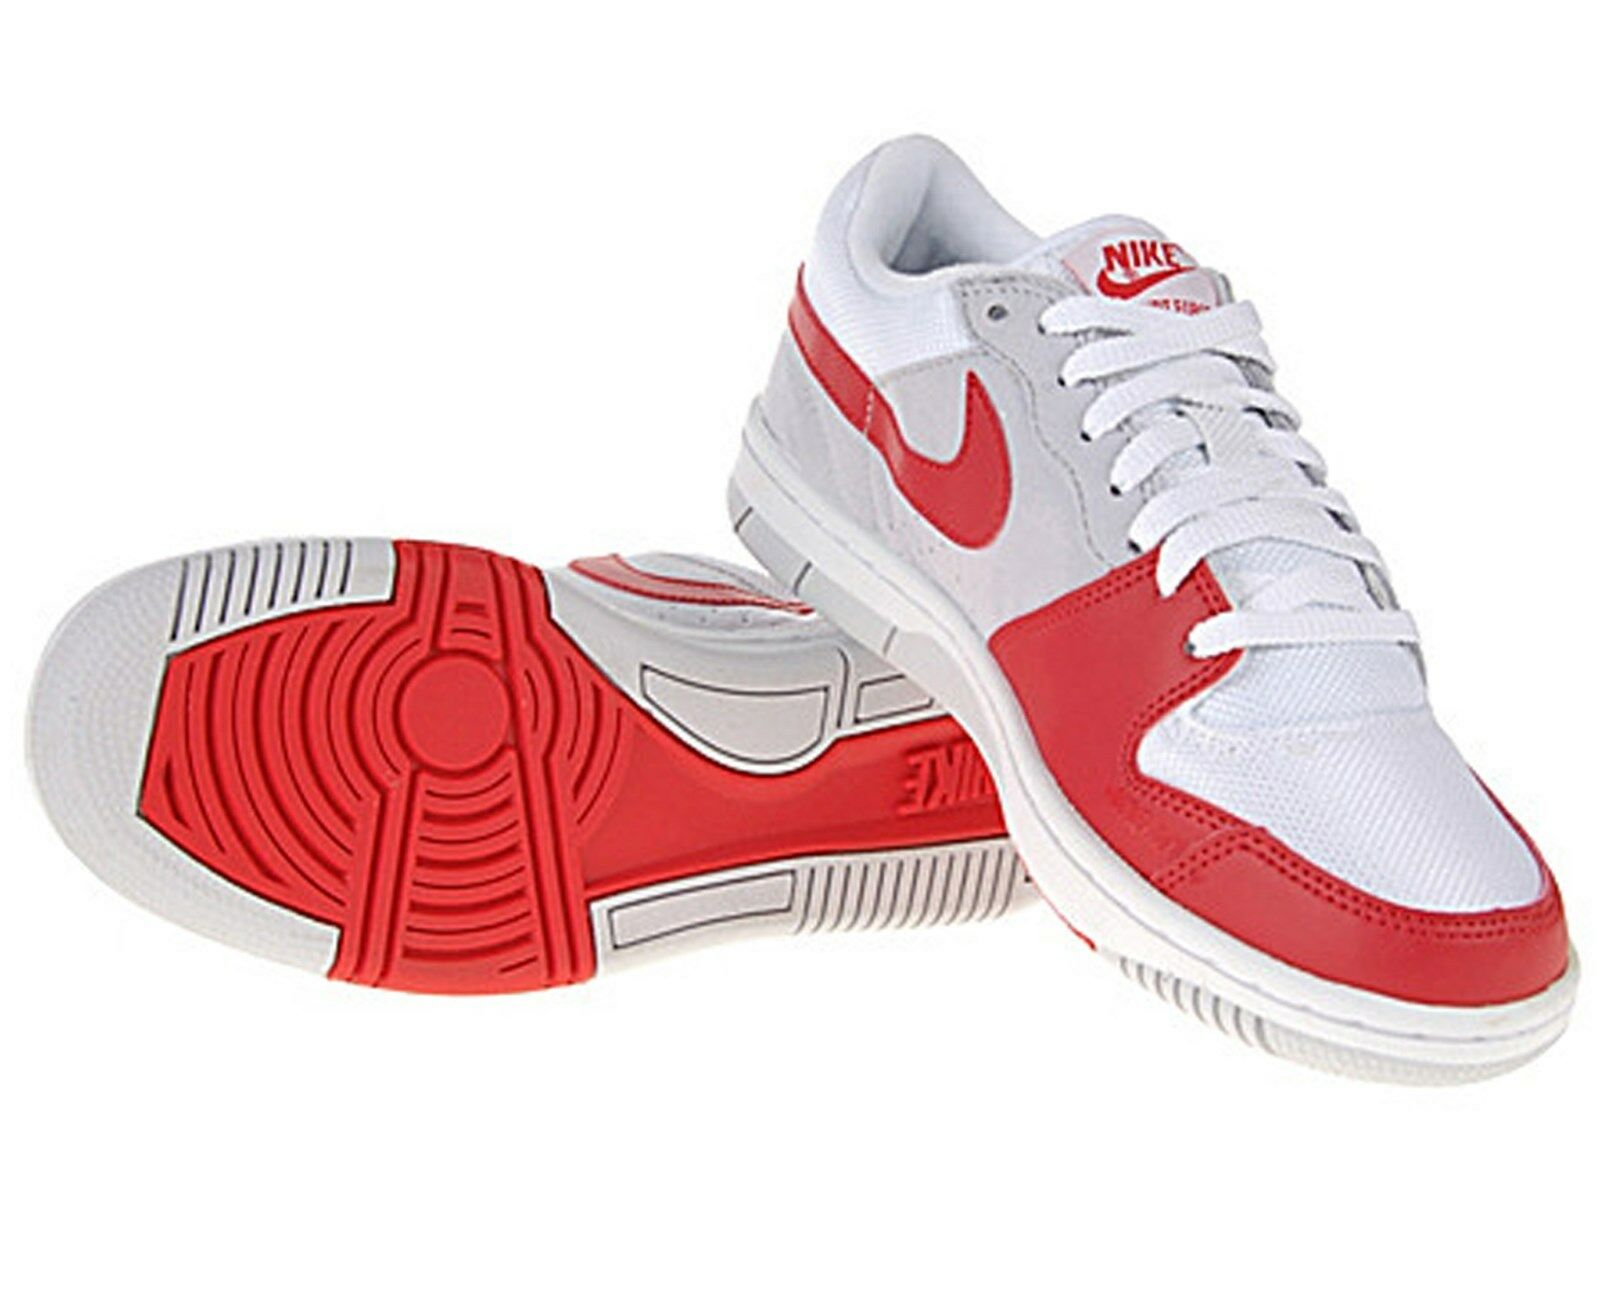 NEW NIKE COURT FORCE LOW BASIC SHOES SNEAKERS DEADSTOCK SIZE 8.5 US